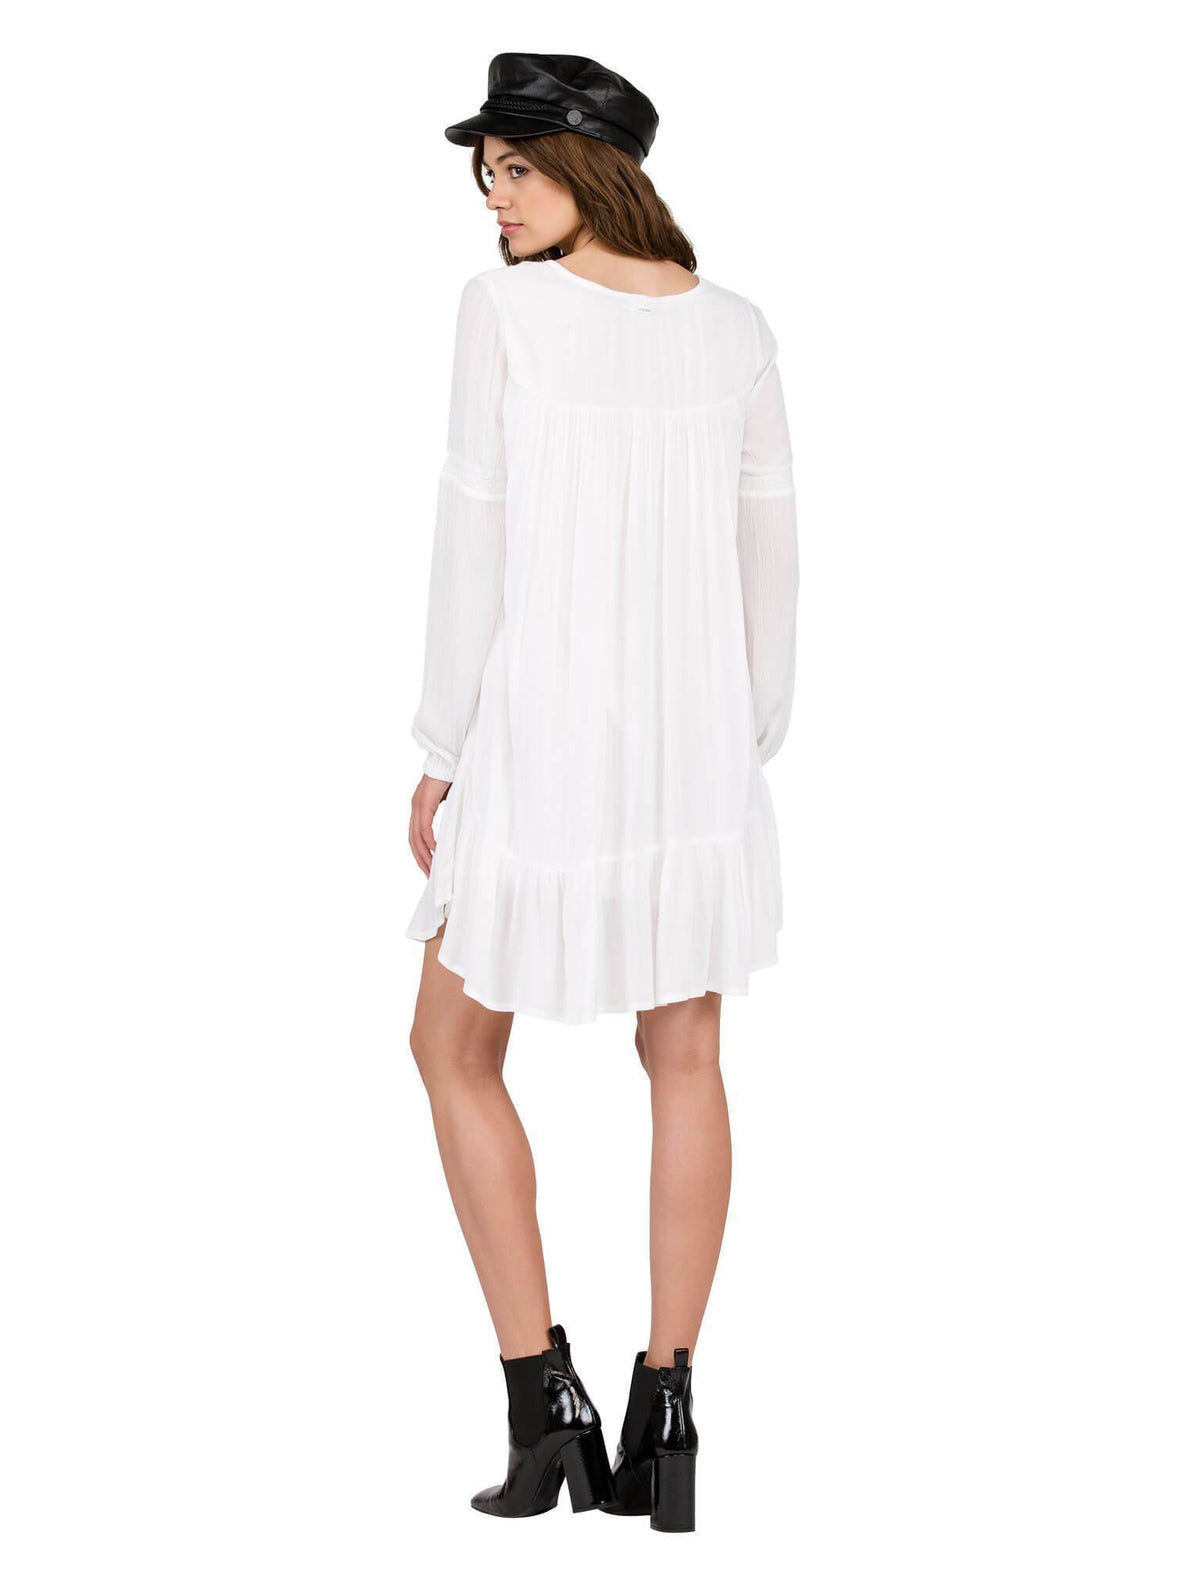 Ethos Long Sleeve Dress - White